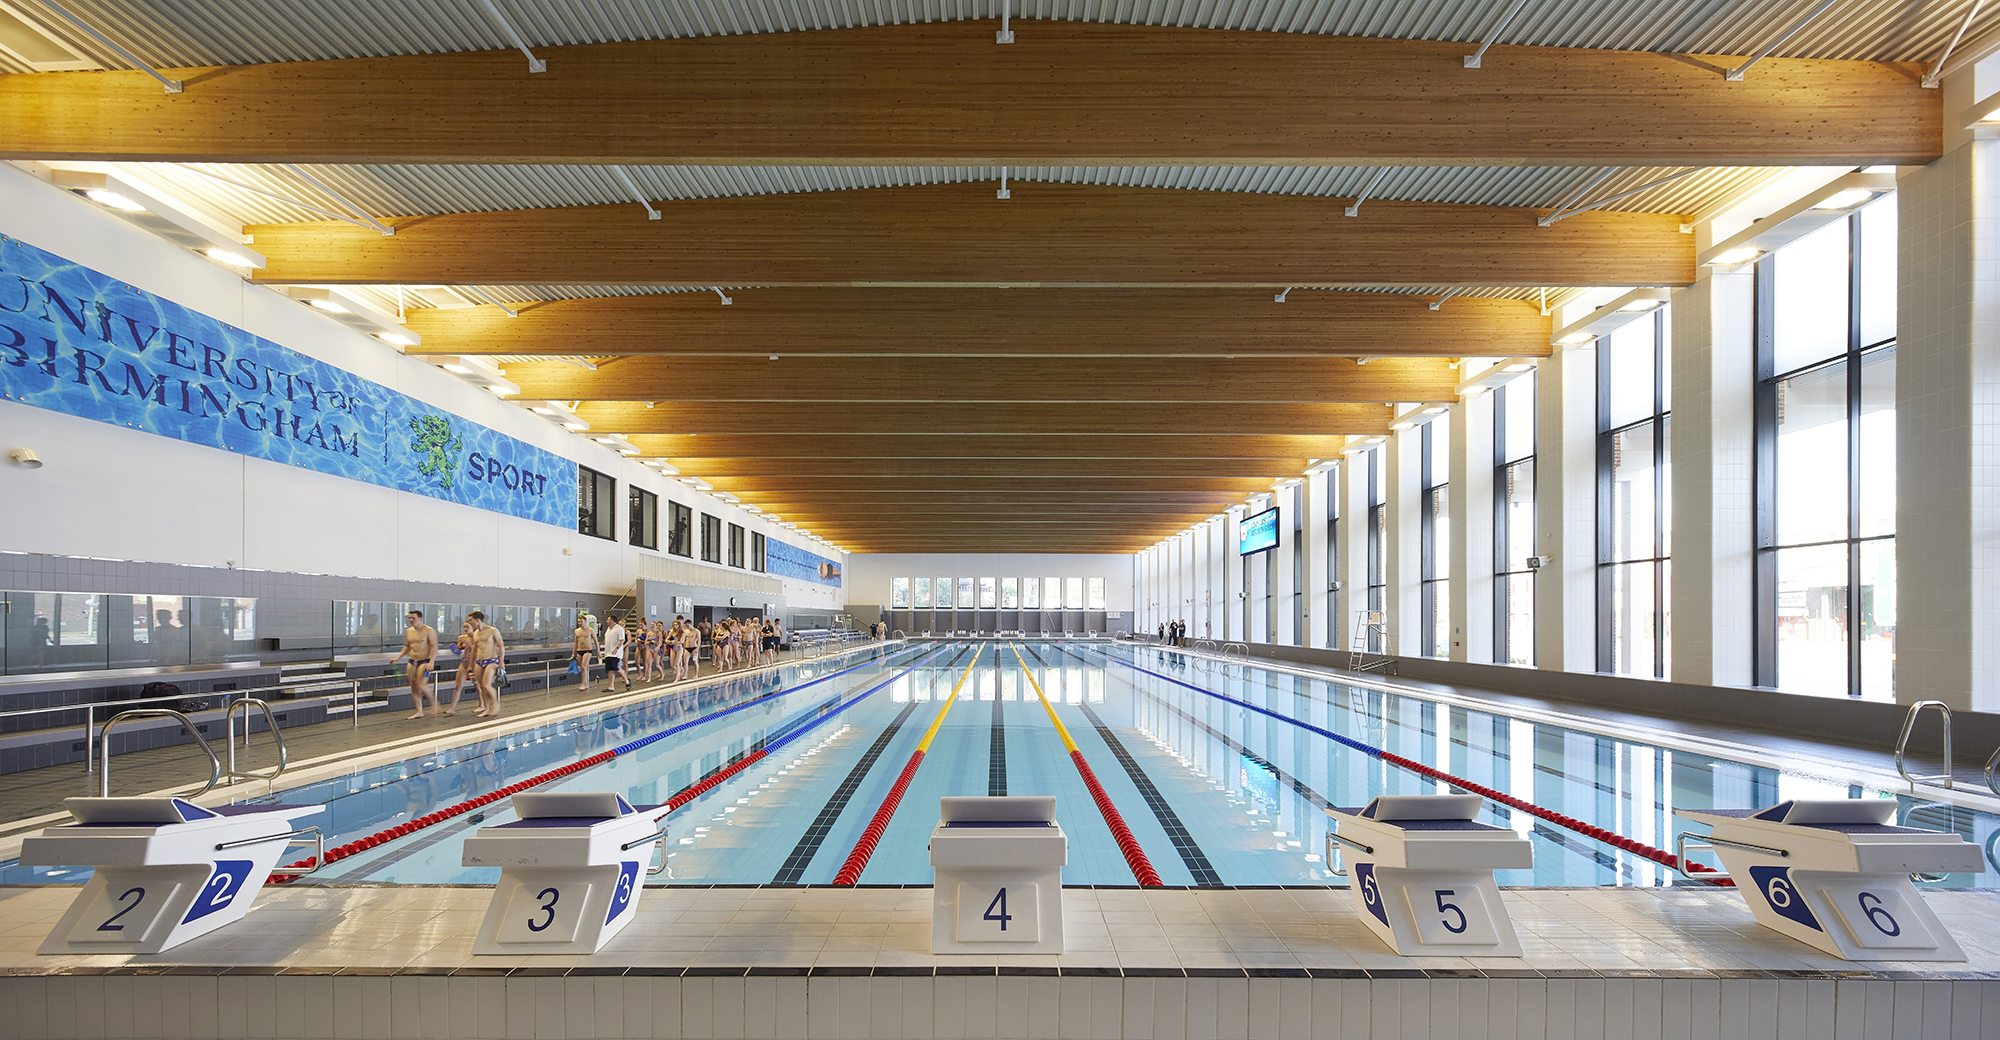 University of birmingham indoor sports centre eq2 light - University of birmingham swimming pool ...